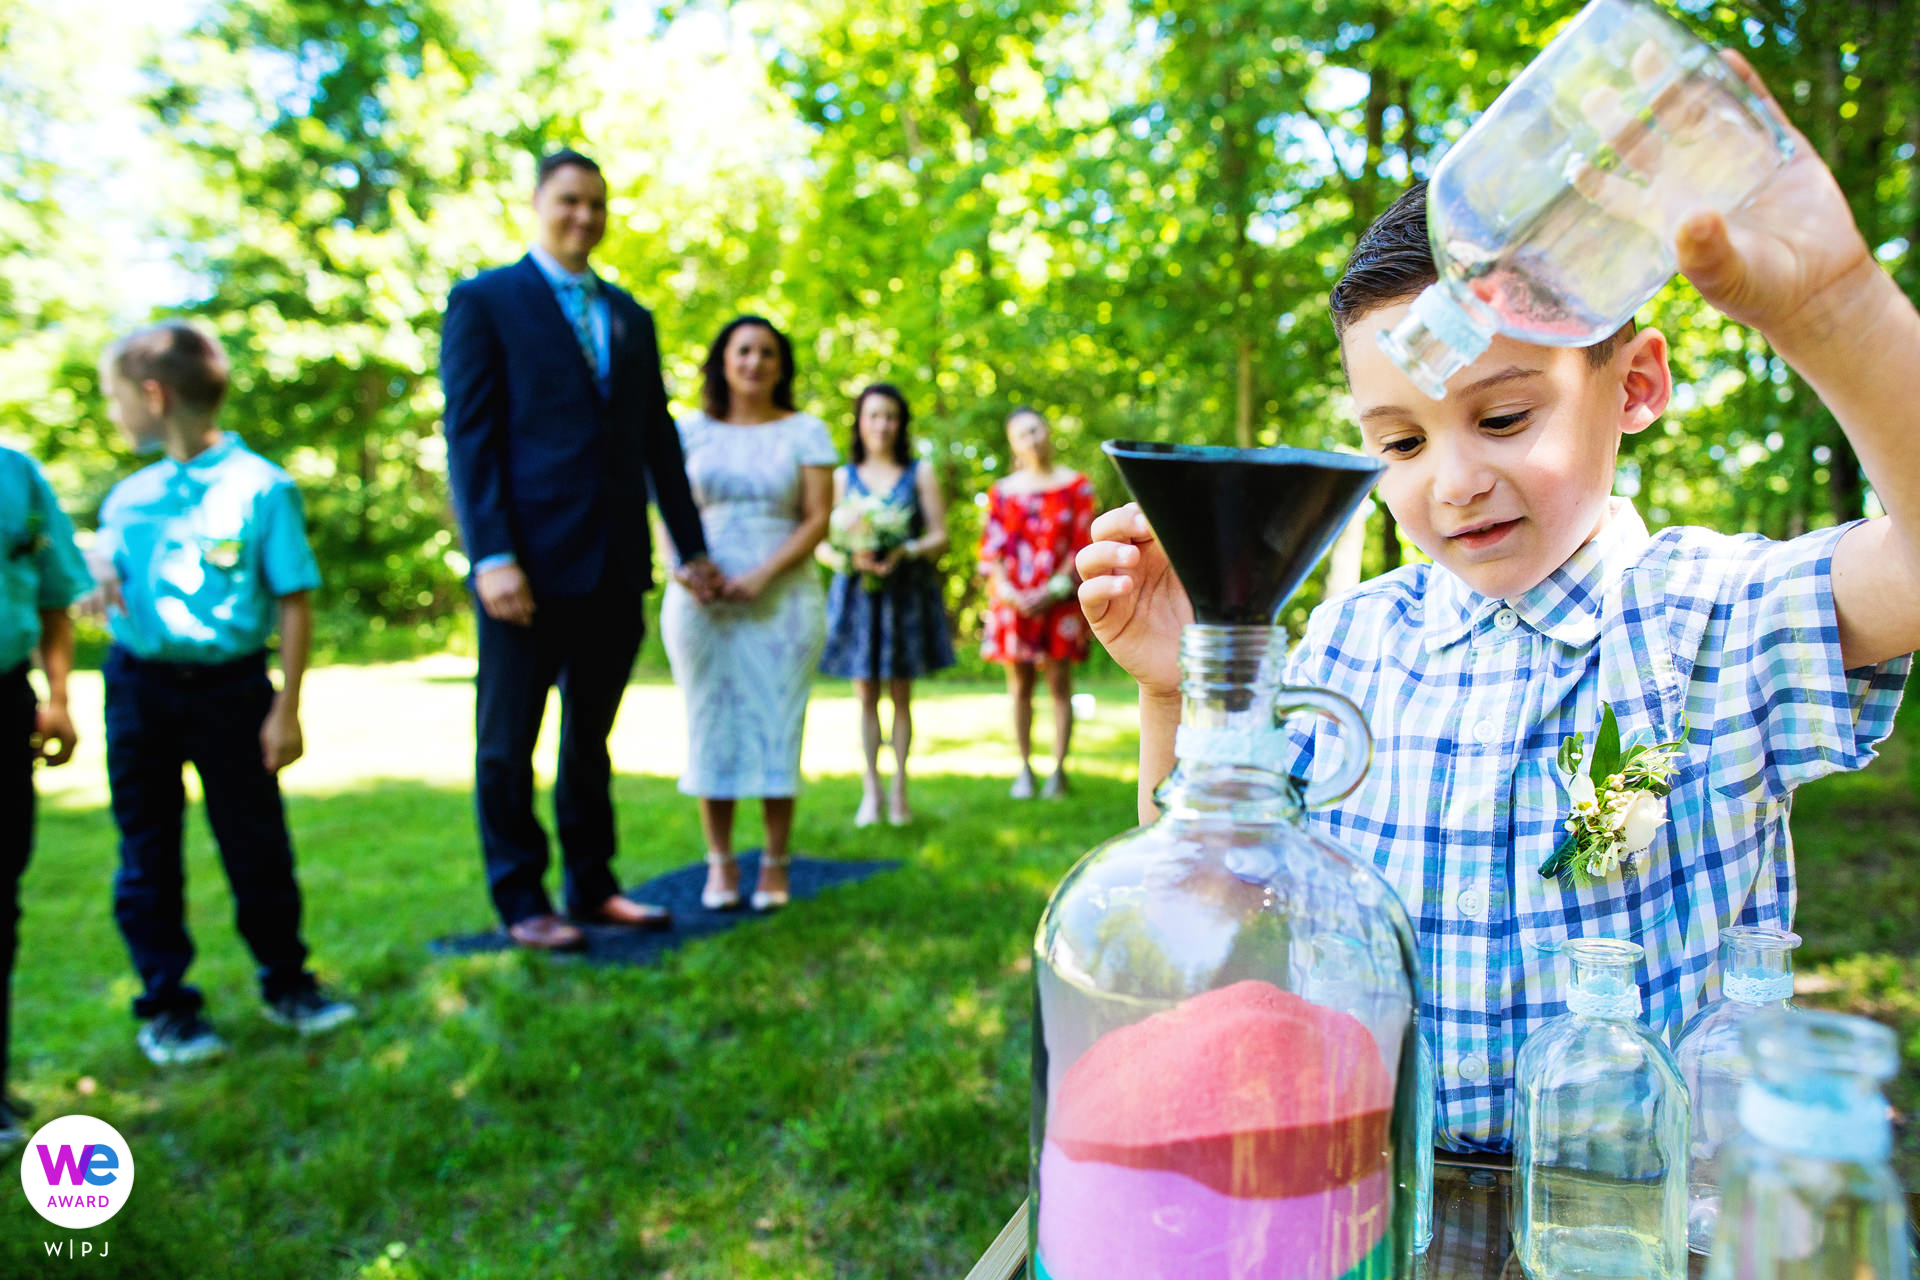 Hunterdon County, New Jersey Backyard Elopement Images   The boys enjoy themselves as they pour colored sand into a glass jar